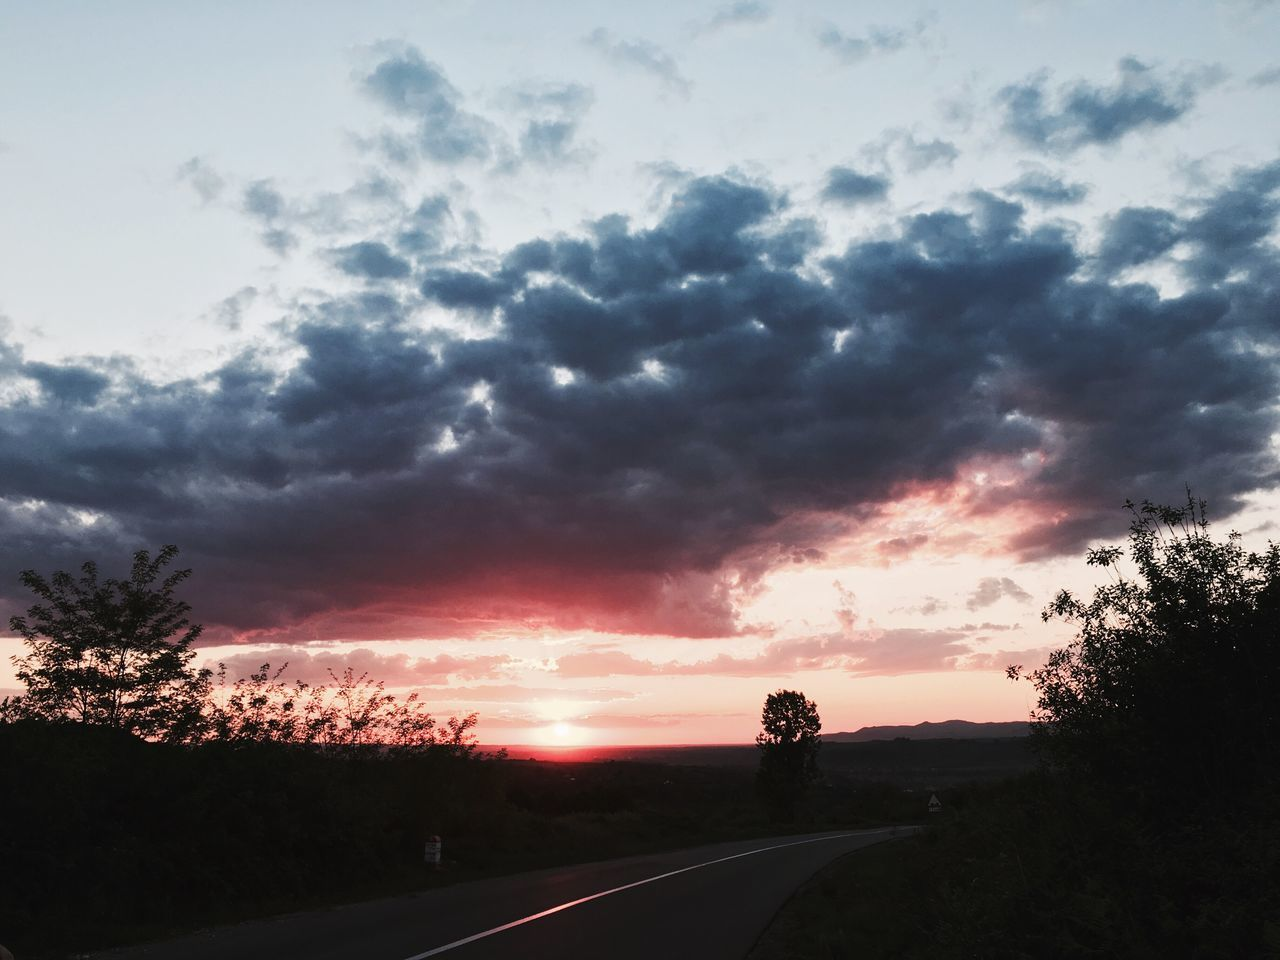 road, tree, sunset, the way forward, sky, cloud - sky, transportation, silhouette, nature, scenics, tranquility, tranquil scene, beauty in nature, outdoors, no people, landscape, day